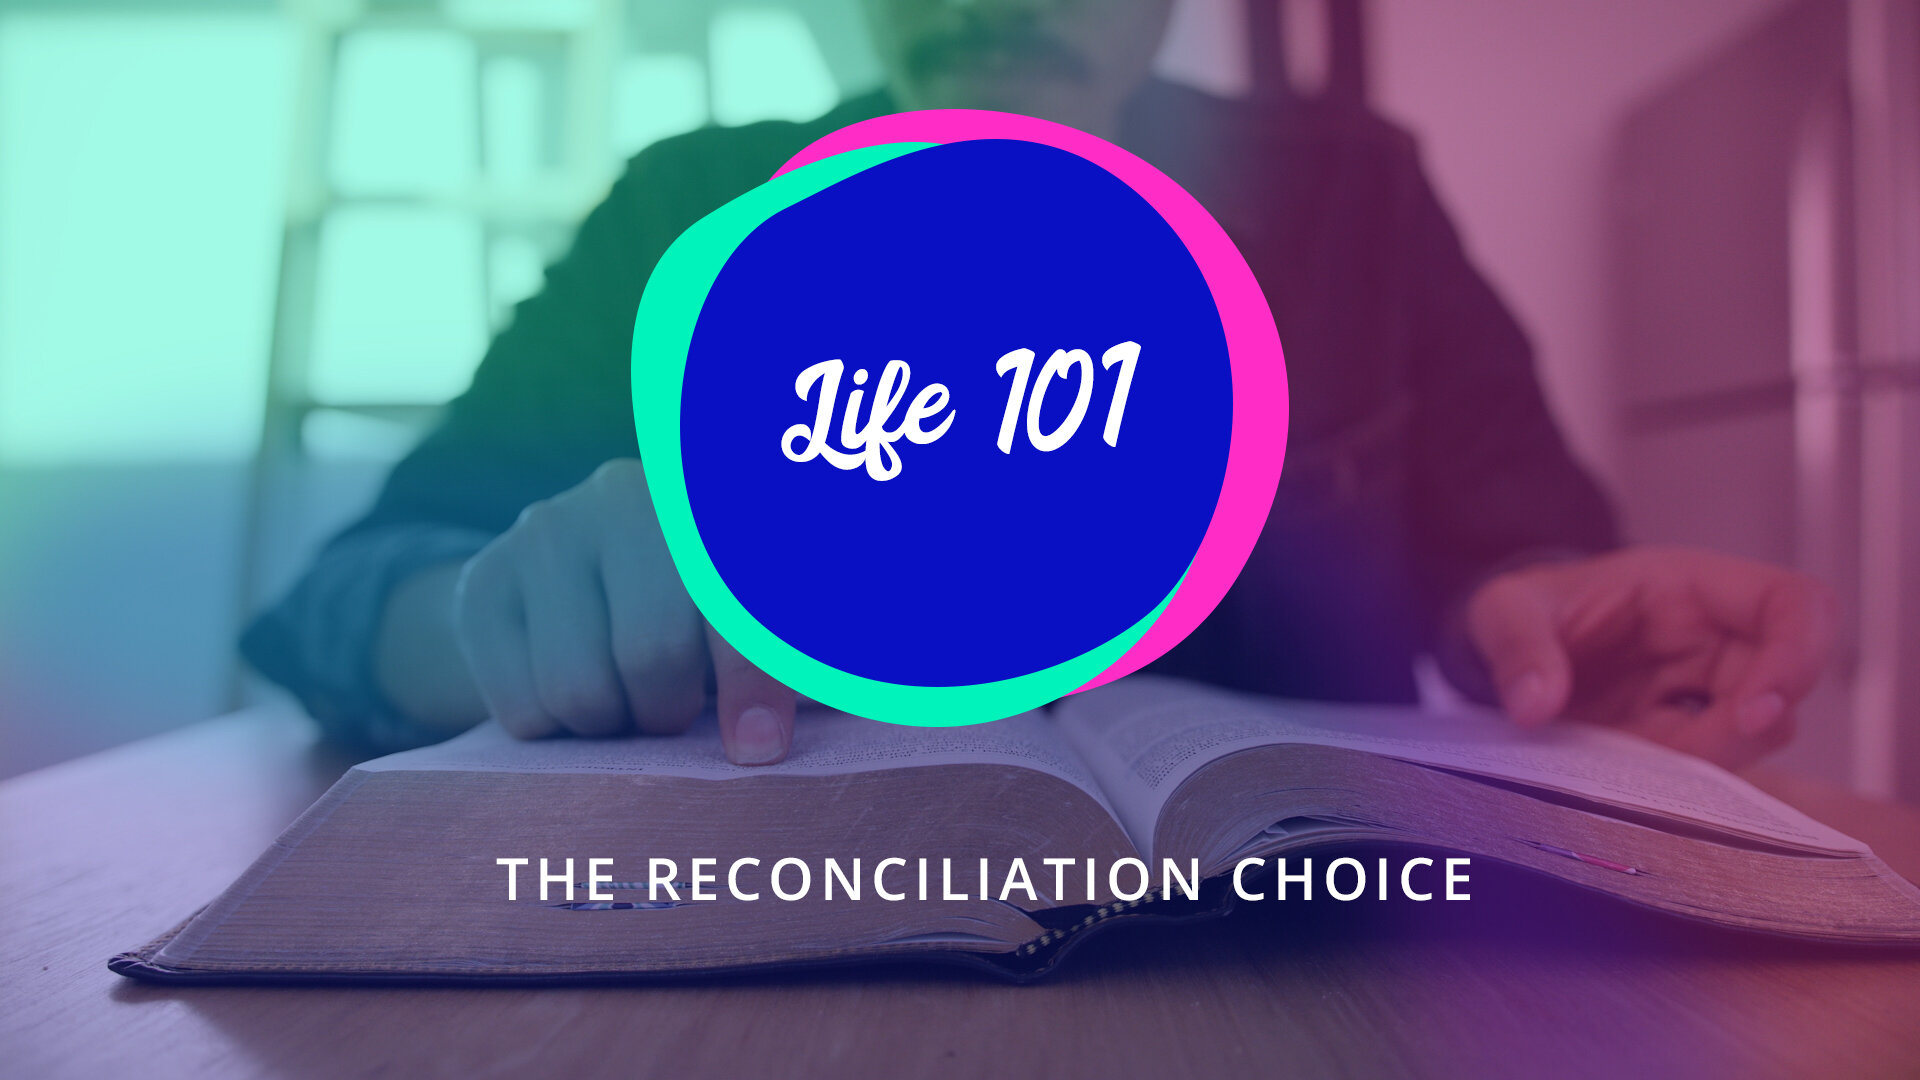 7 | The Reconciliation Choice